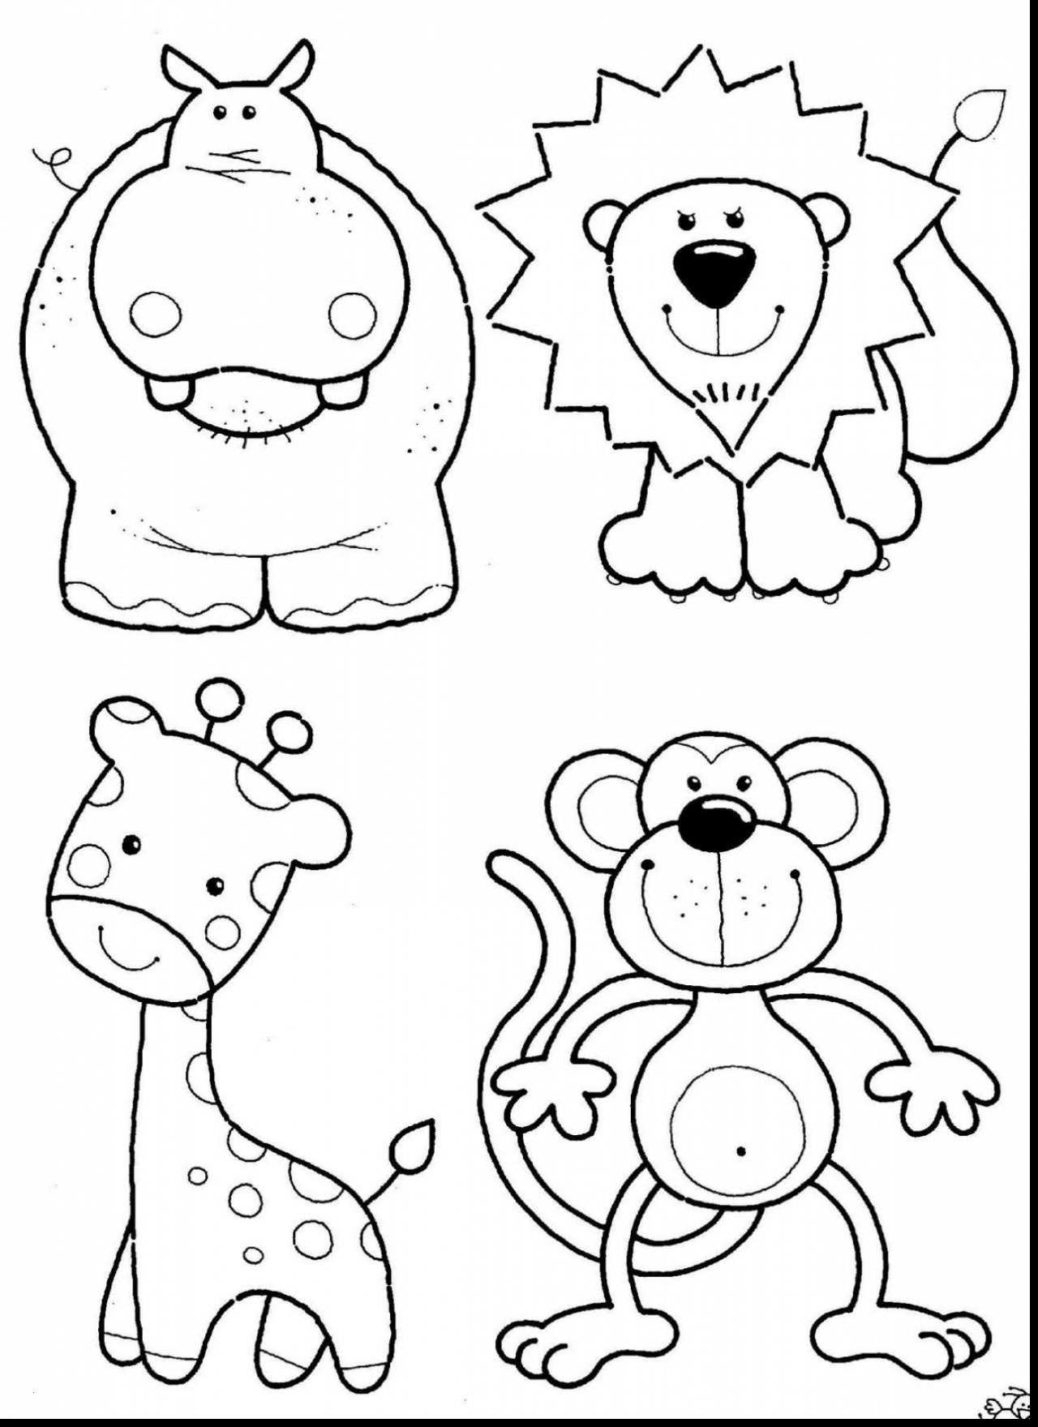 Rick And Morty Coloring Pages Jungle Coloring Pages New Book Rick And Morty Best Stress Relieving